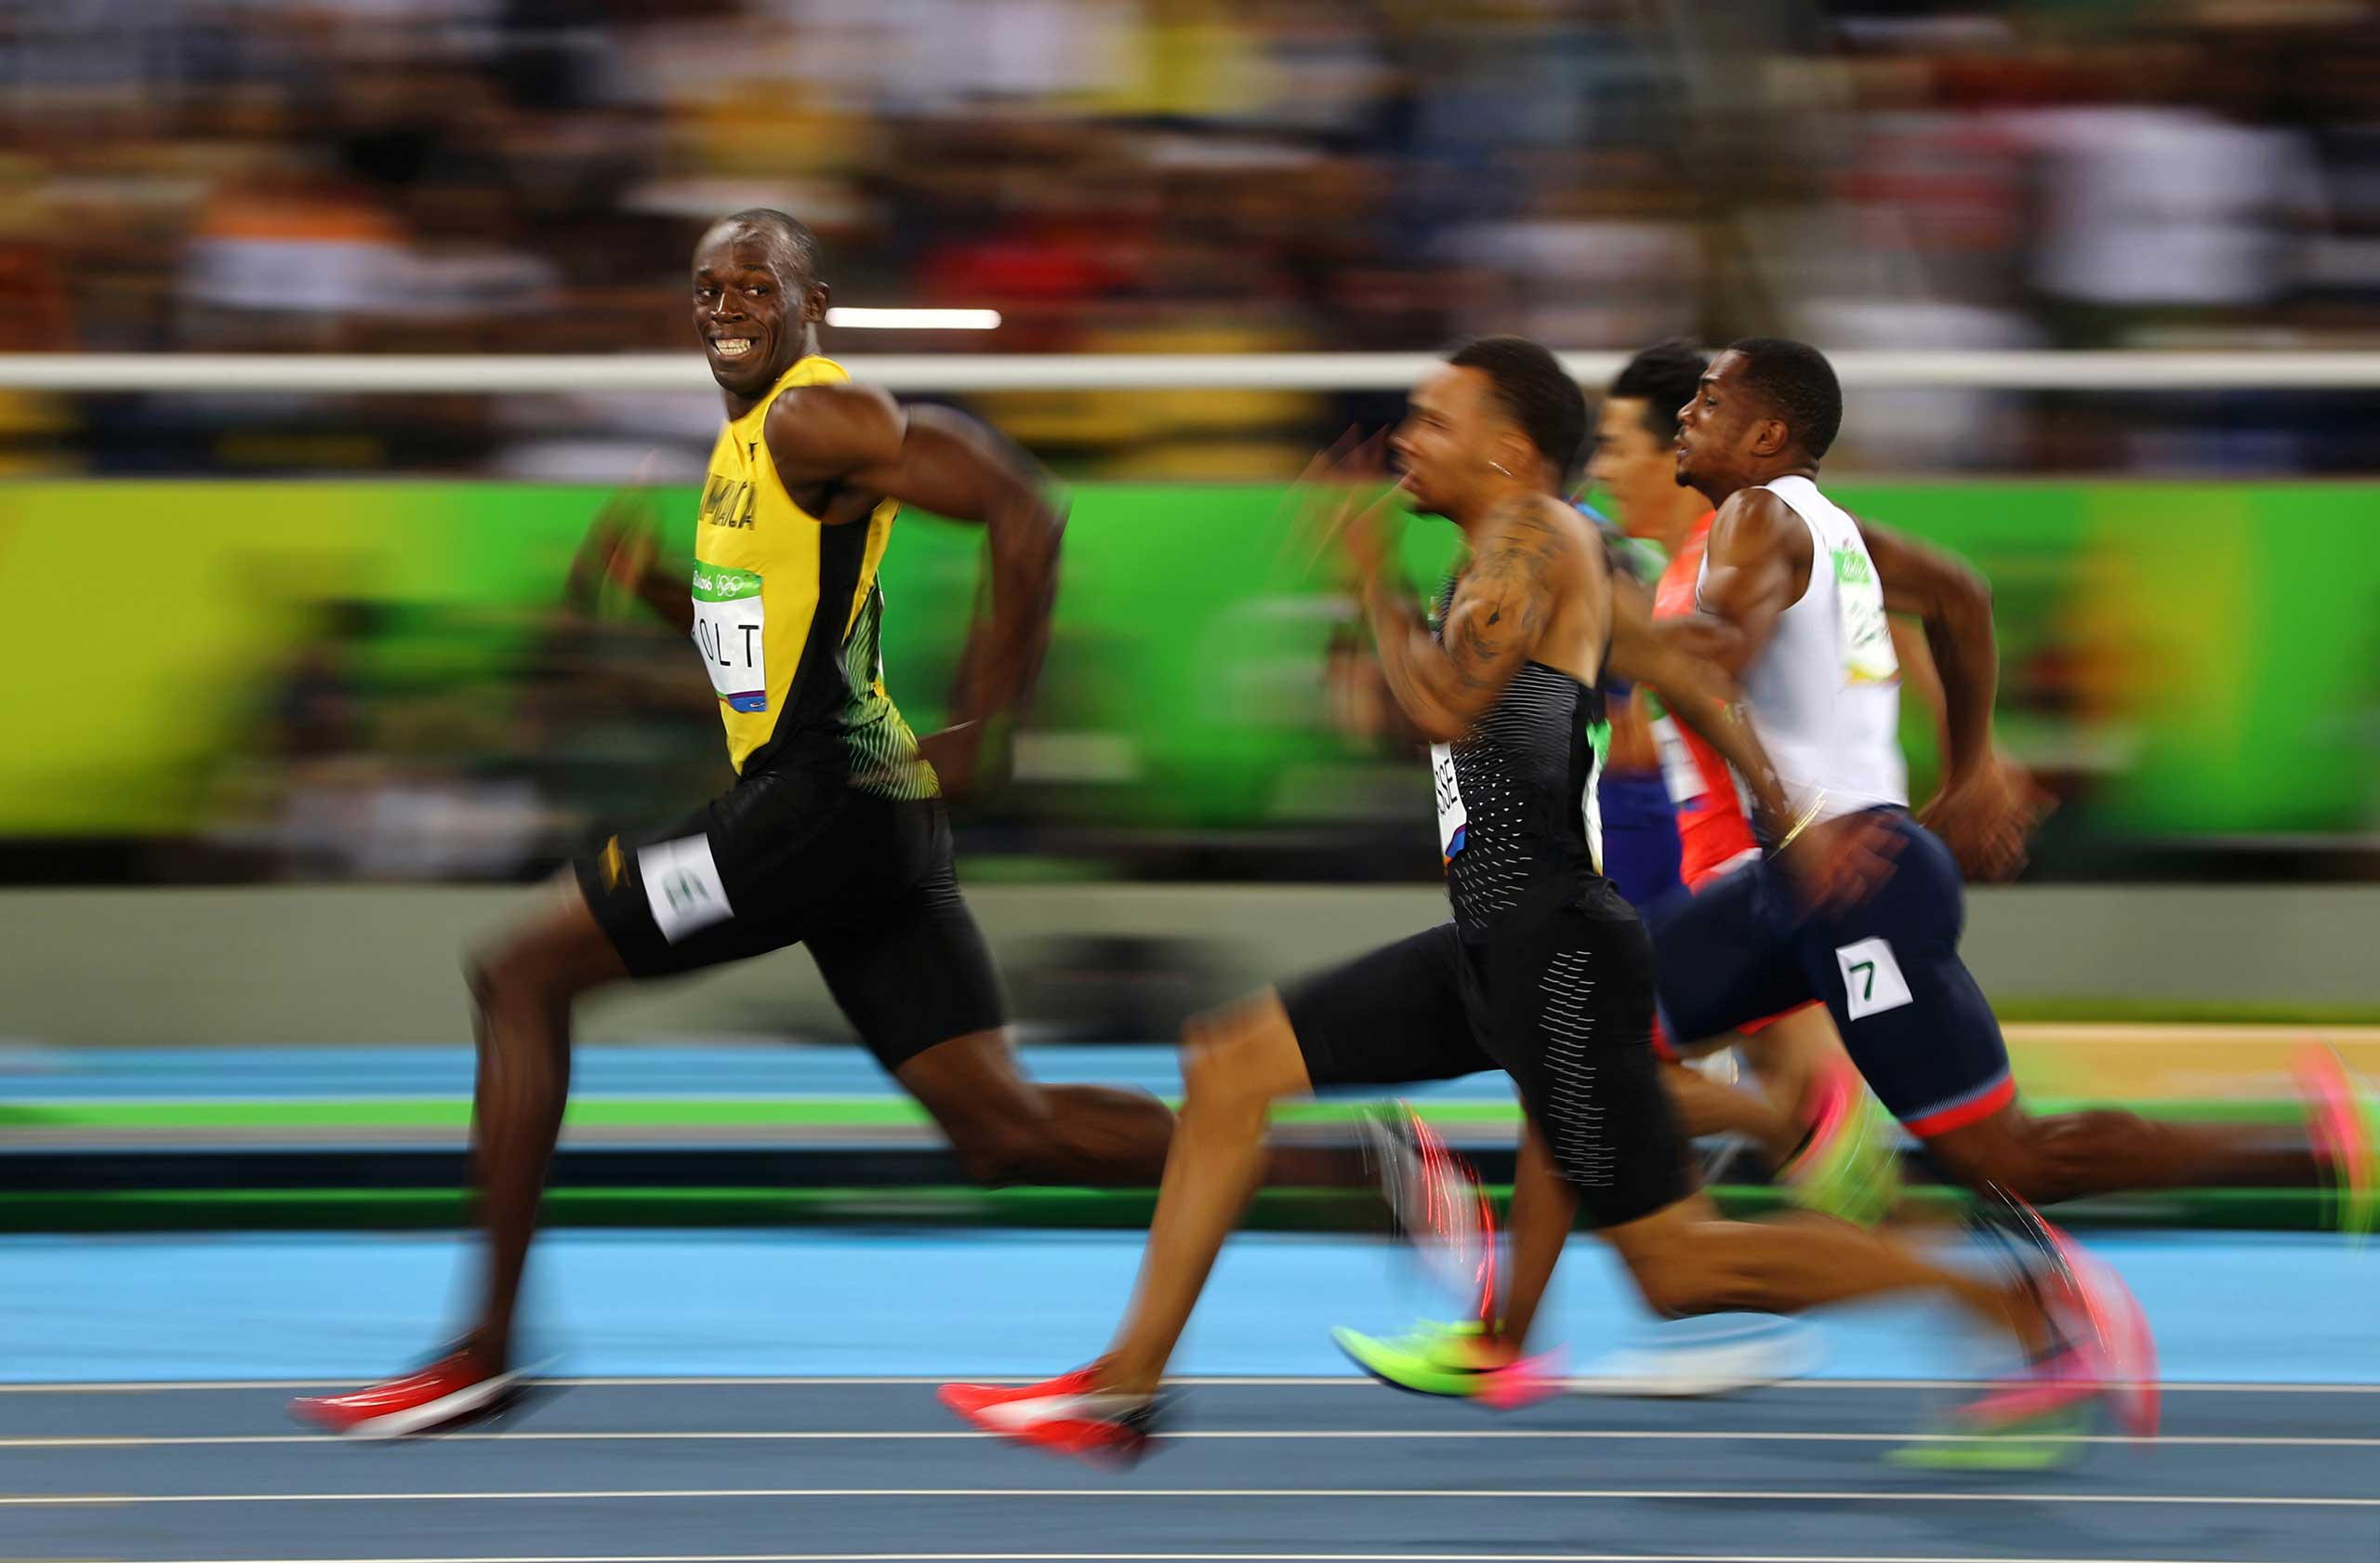 Jamaika's Usain Bolt smiles as he looks back while winning his 100m semi-final race at the Rio 2016 Olympics on Aug. 14, 2006 in Rio de Janeiro.